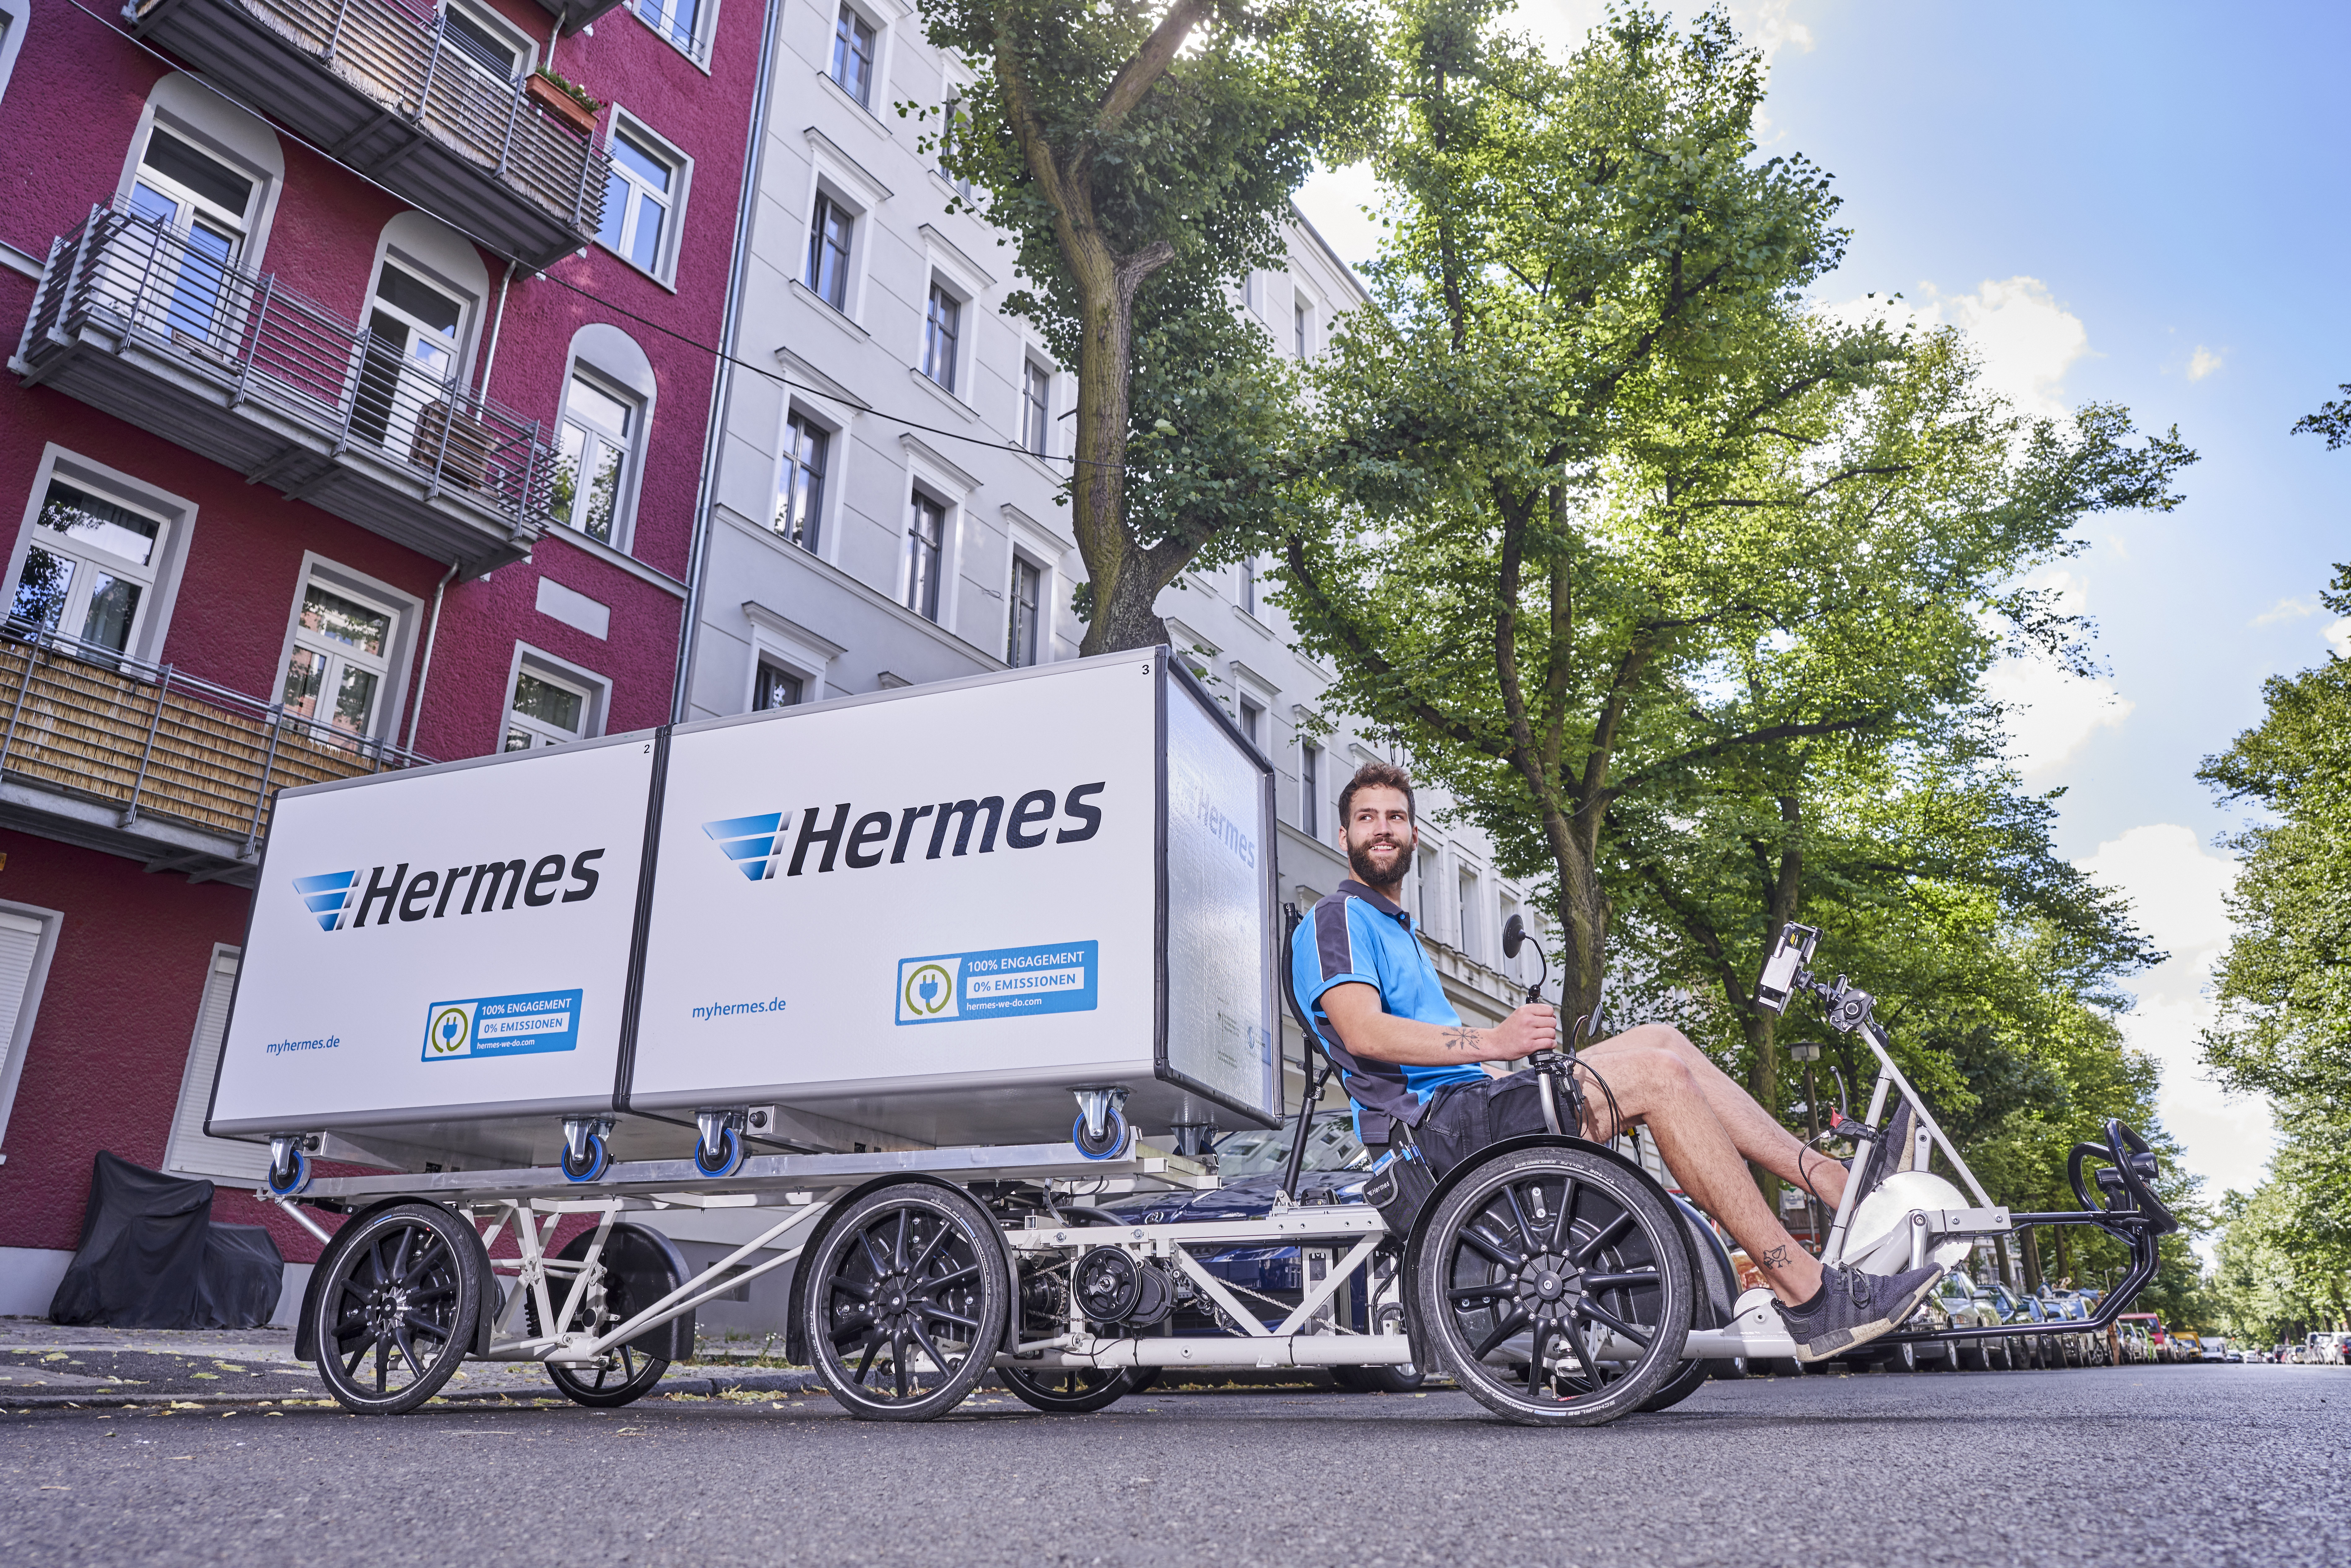 a02a721abf2 Berlin: Hermes trials parcel delivery by cargo bikes | Hermes Newsroom